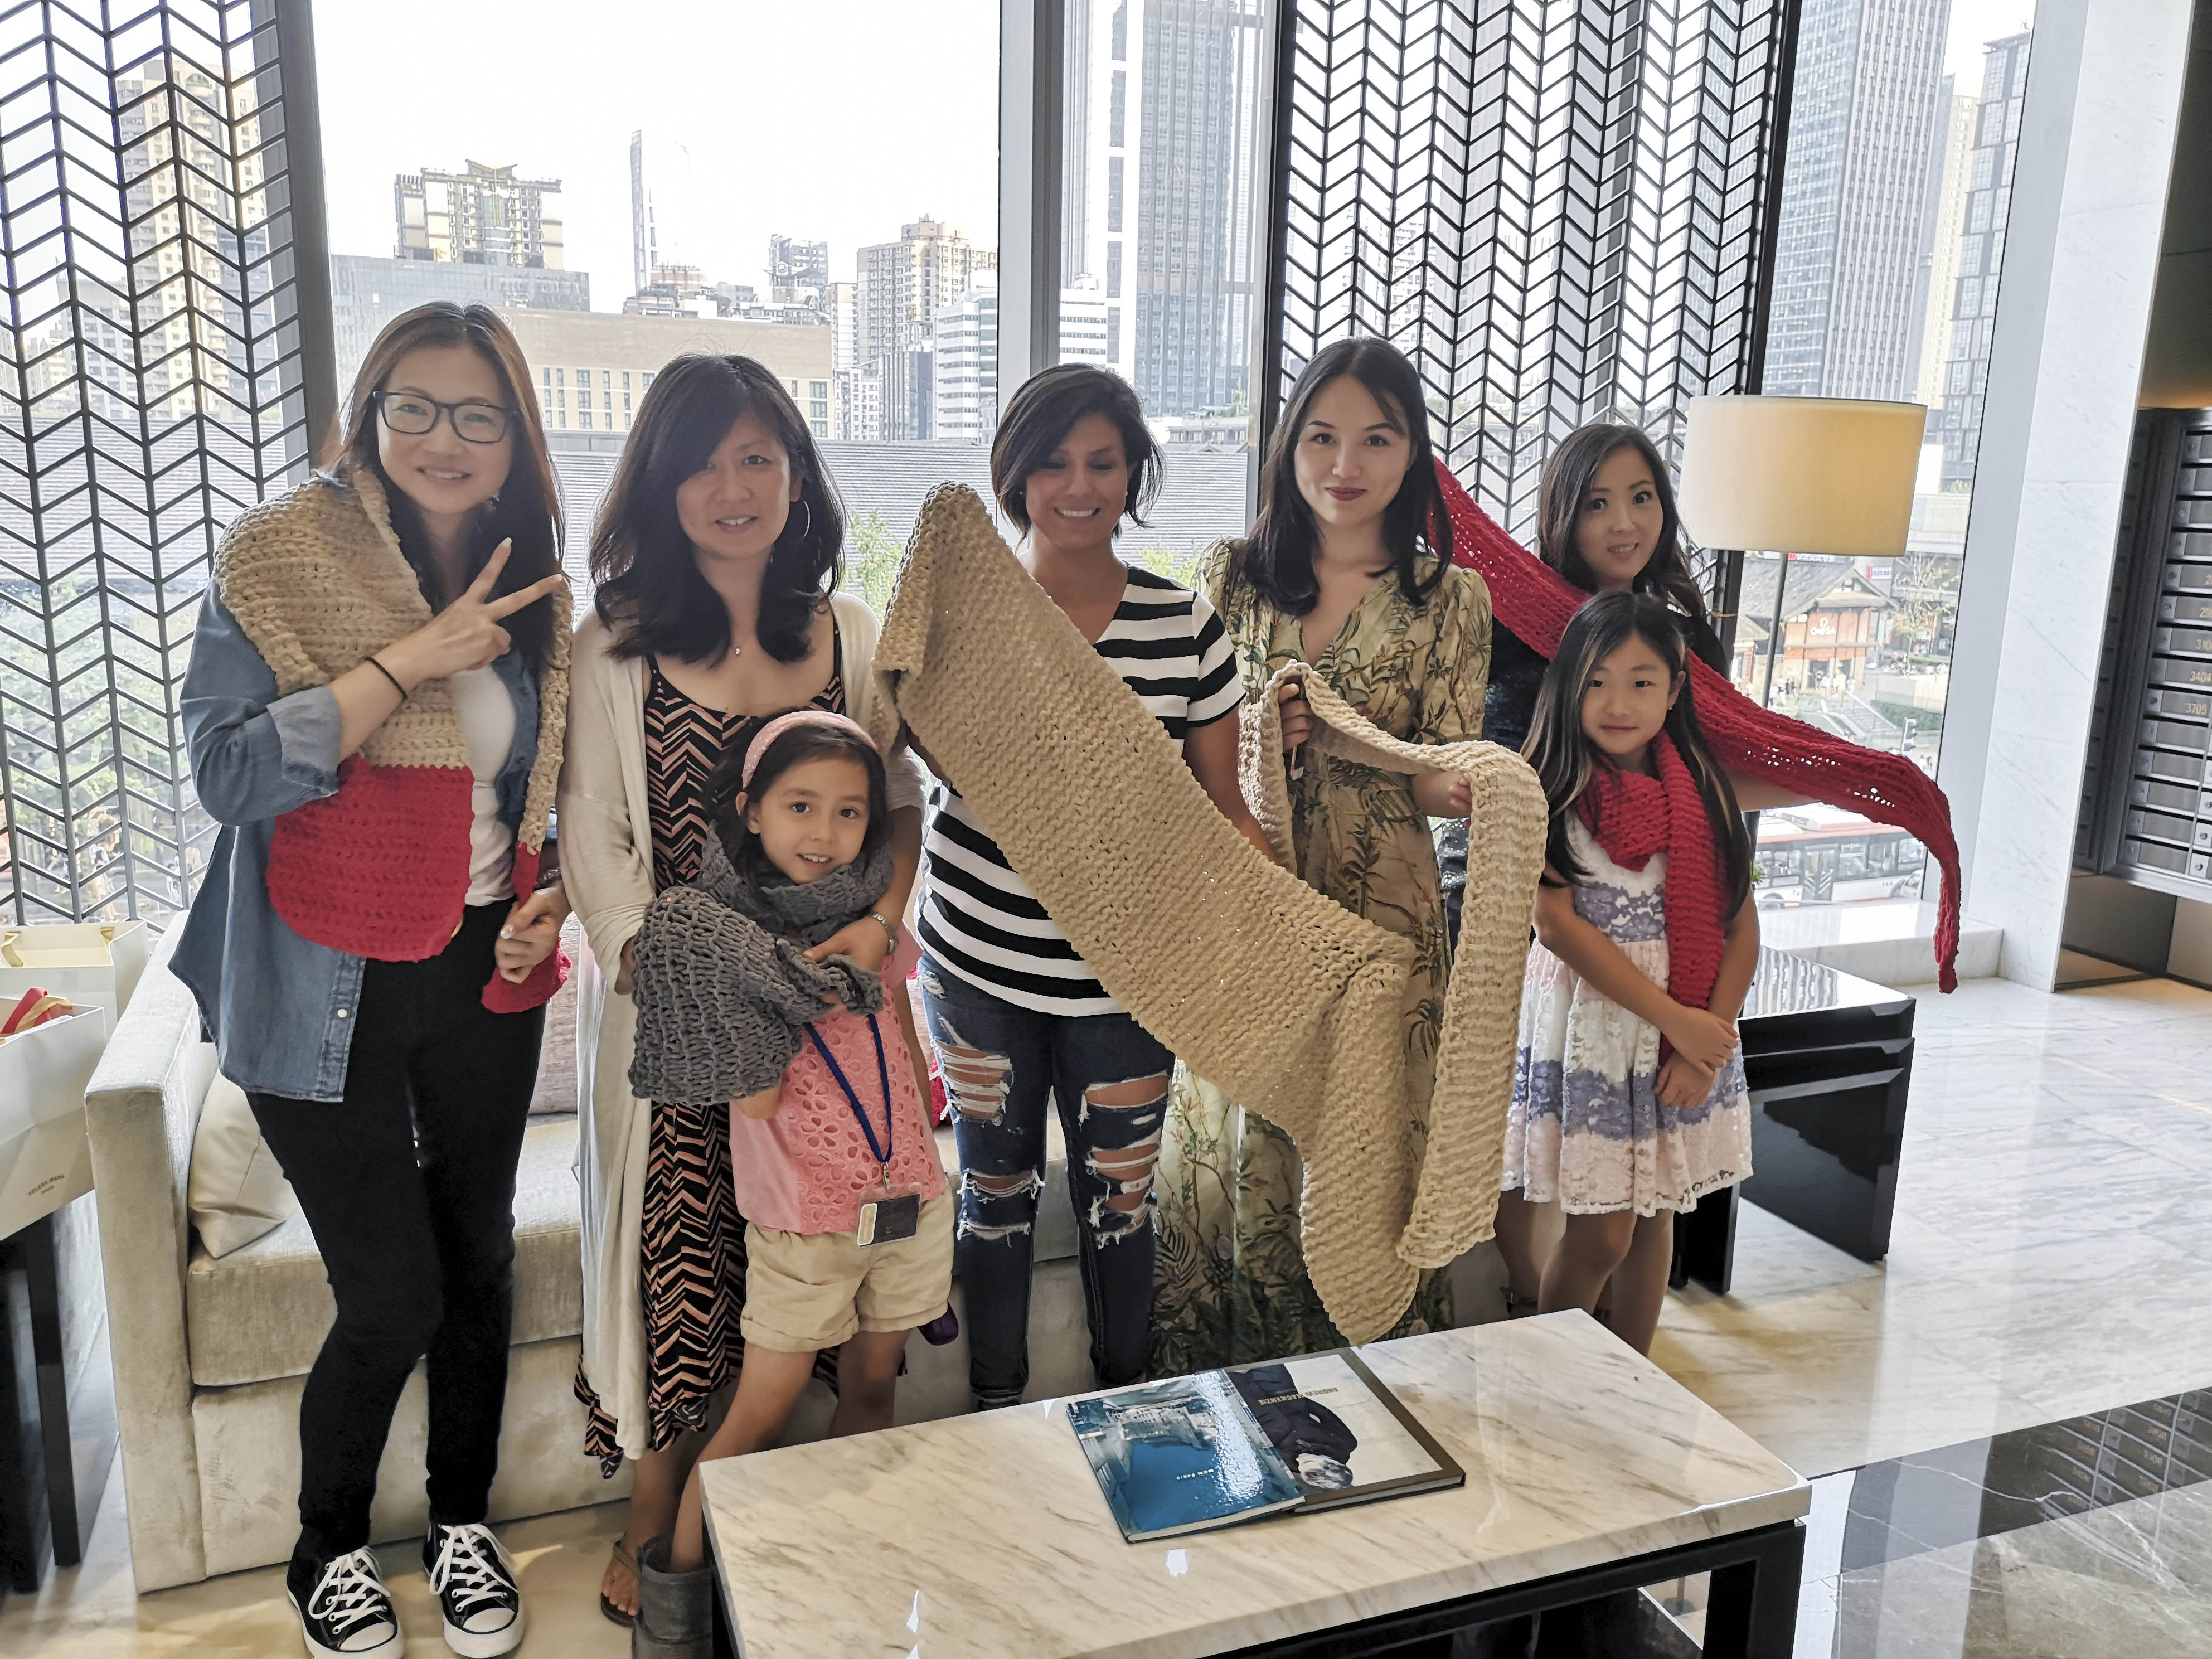 Charity Initiative Knitting for Love - IFS Residences 国金豪庭